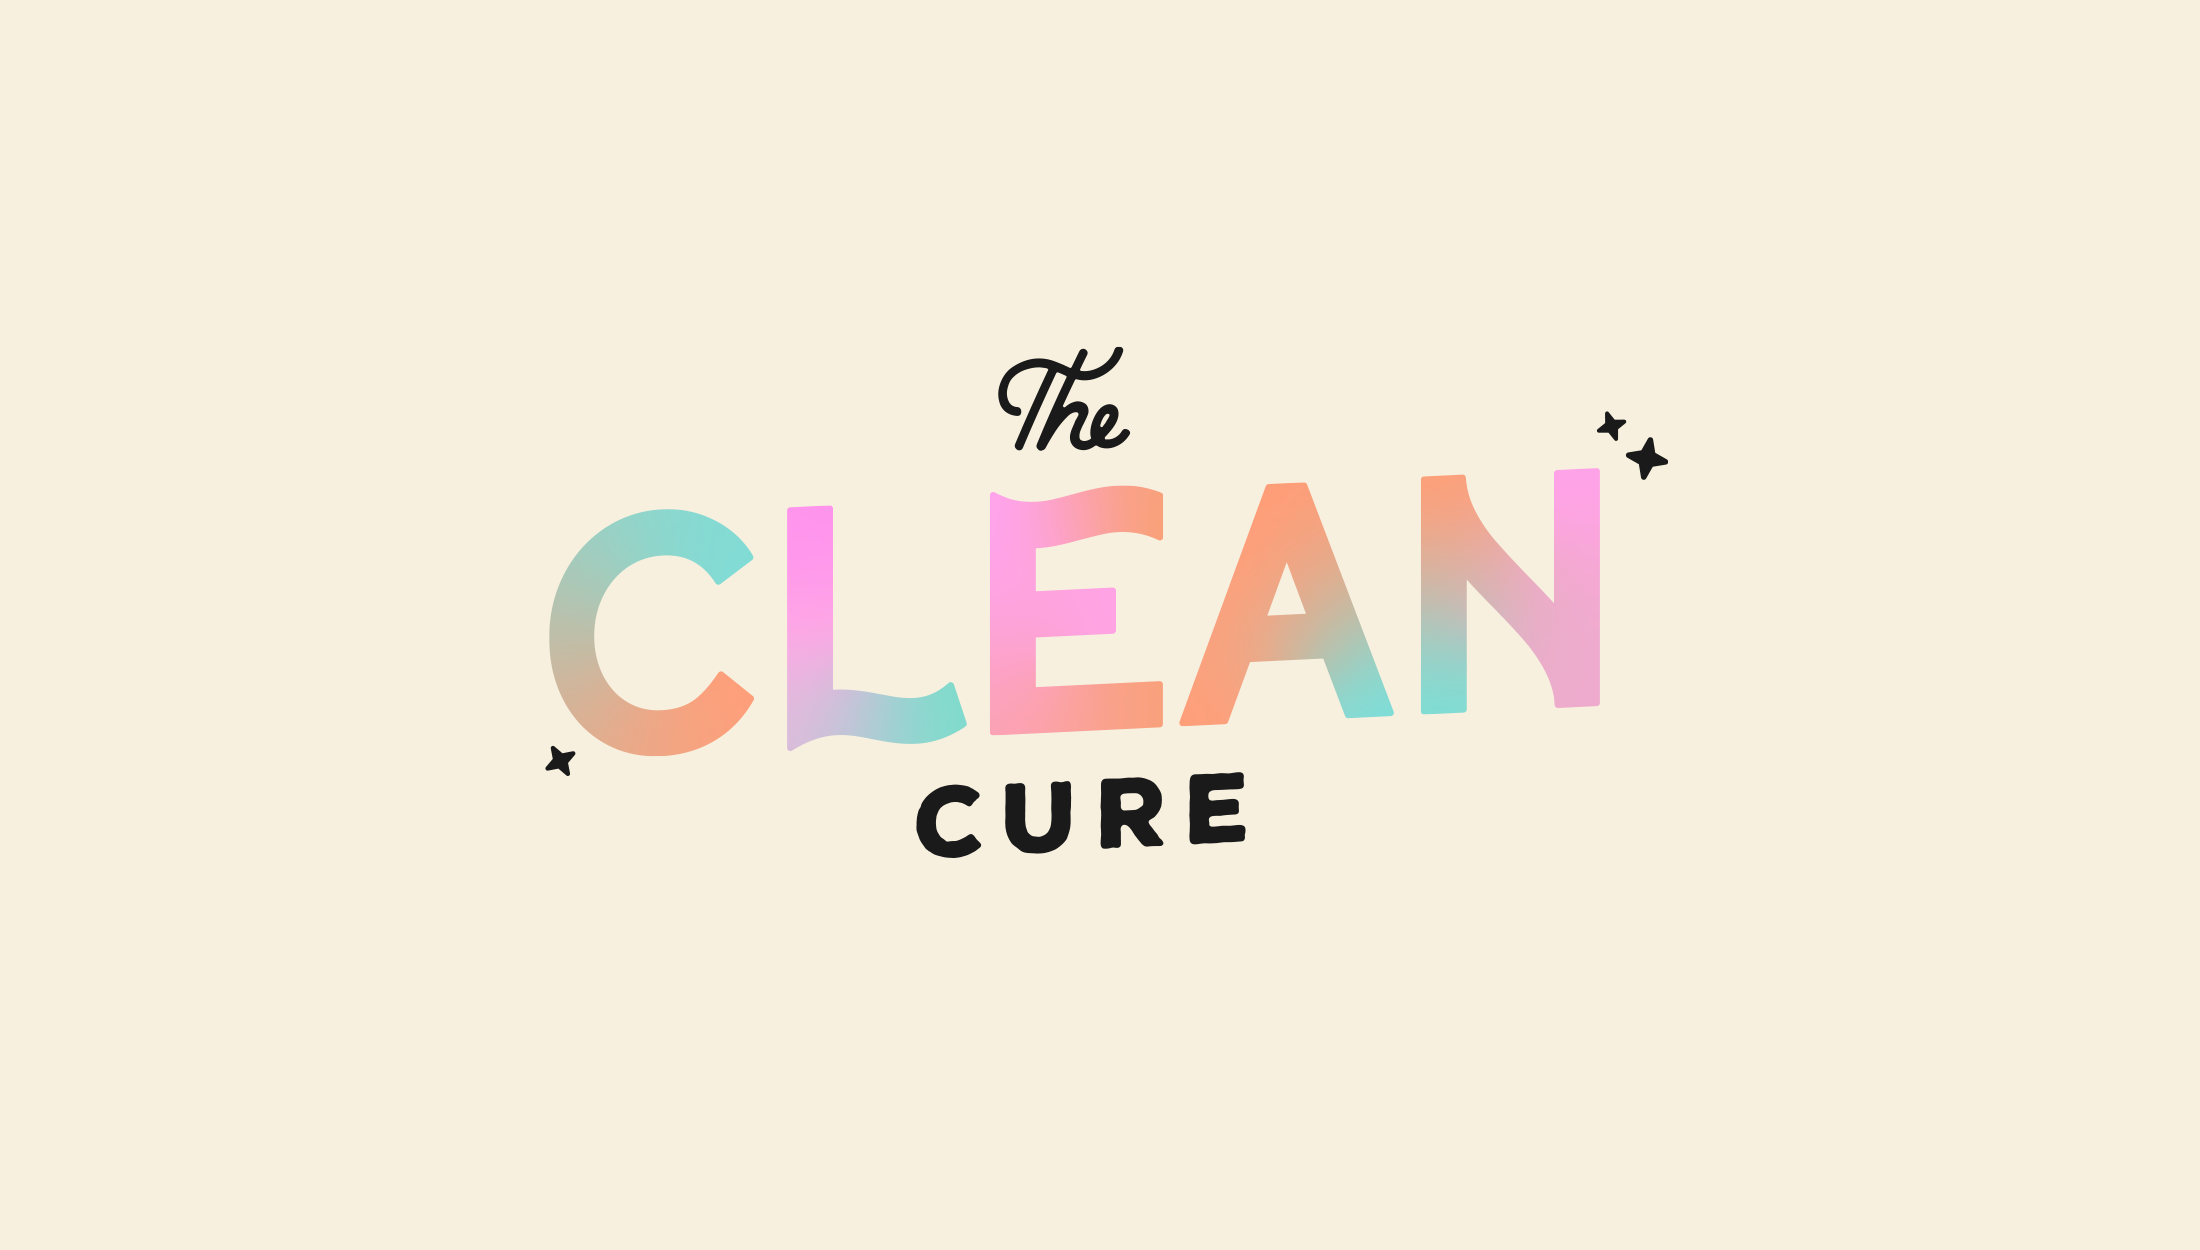 Logo design for The Clean Cure, helping you get organised by delving to the root of the problem - designed by Wiltshire-based graphic designer, Kaye Huett